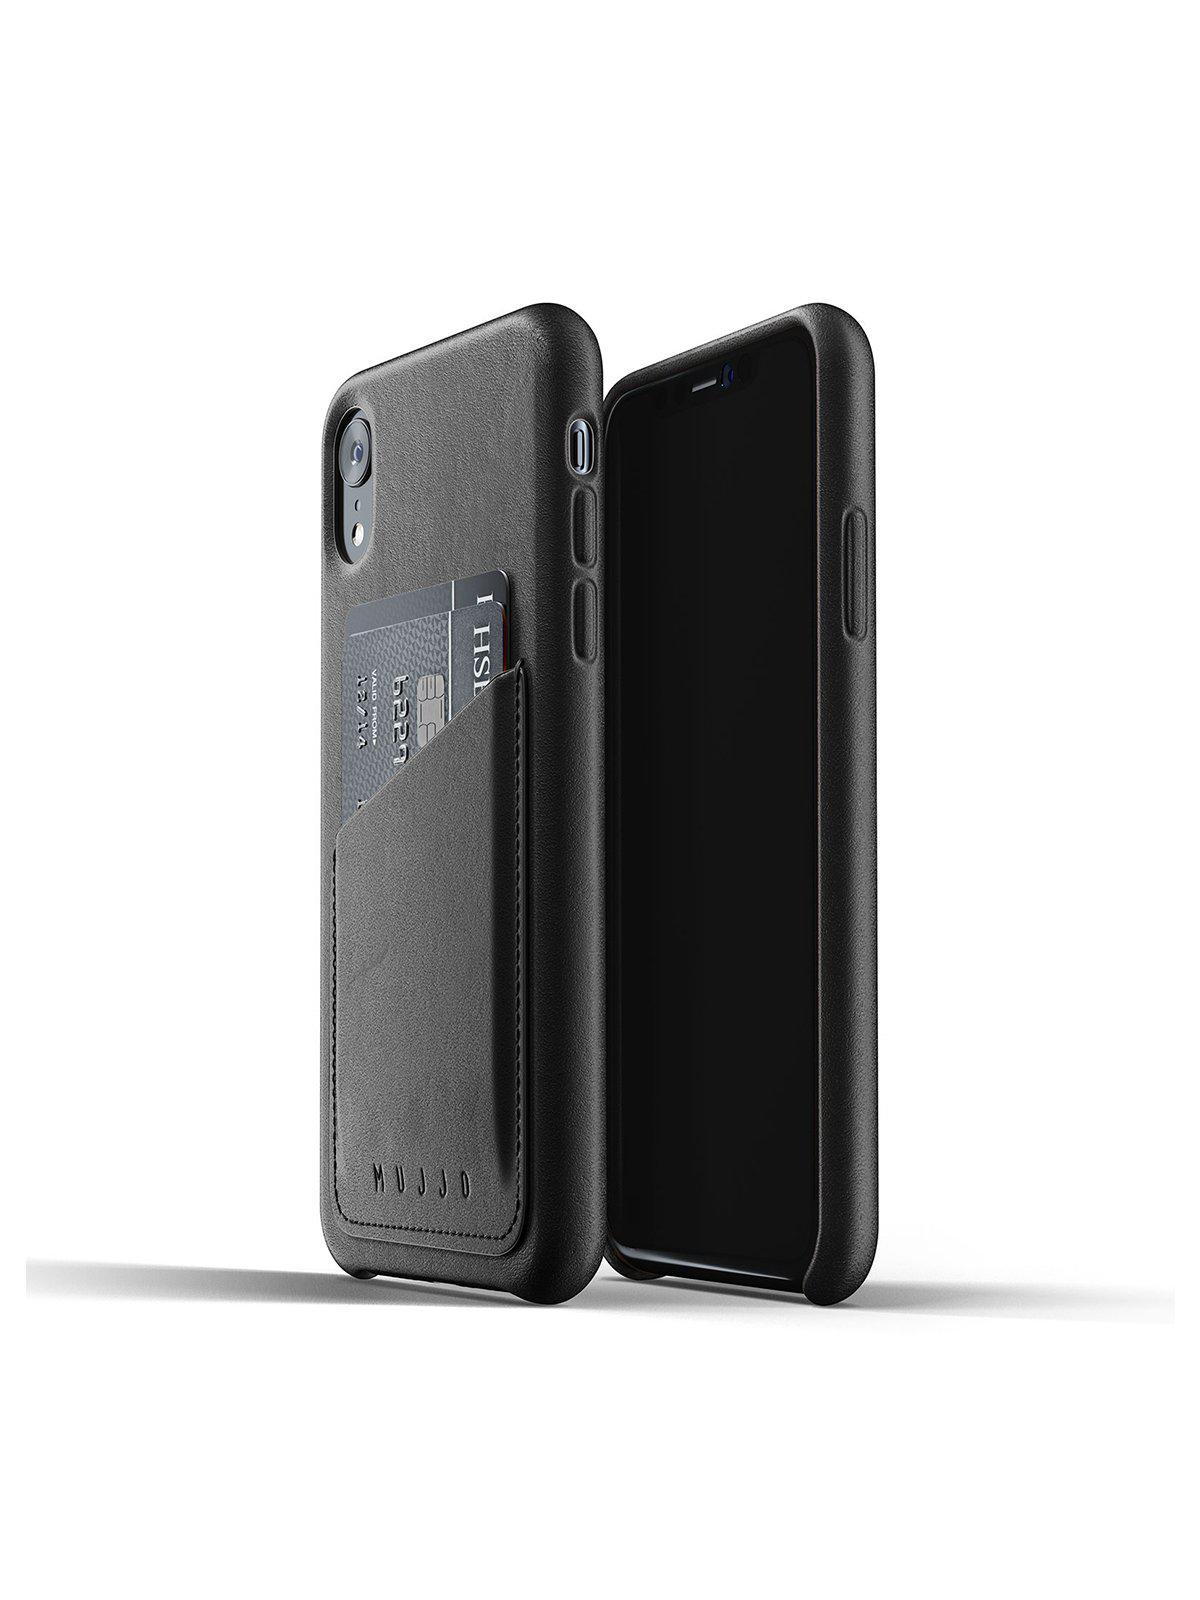 Mujjo Full Leather Wallet Case for iPhone XR Black - MORE by Morello Indonesia